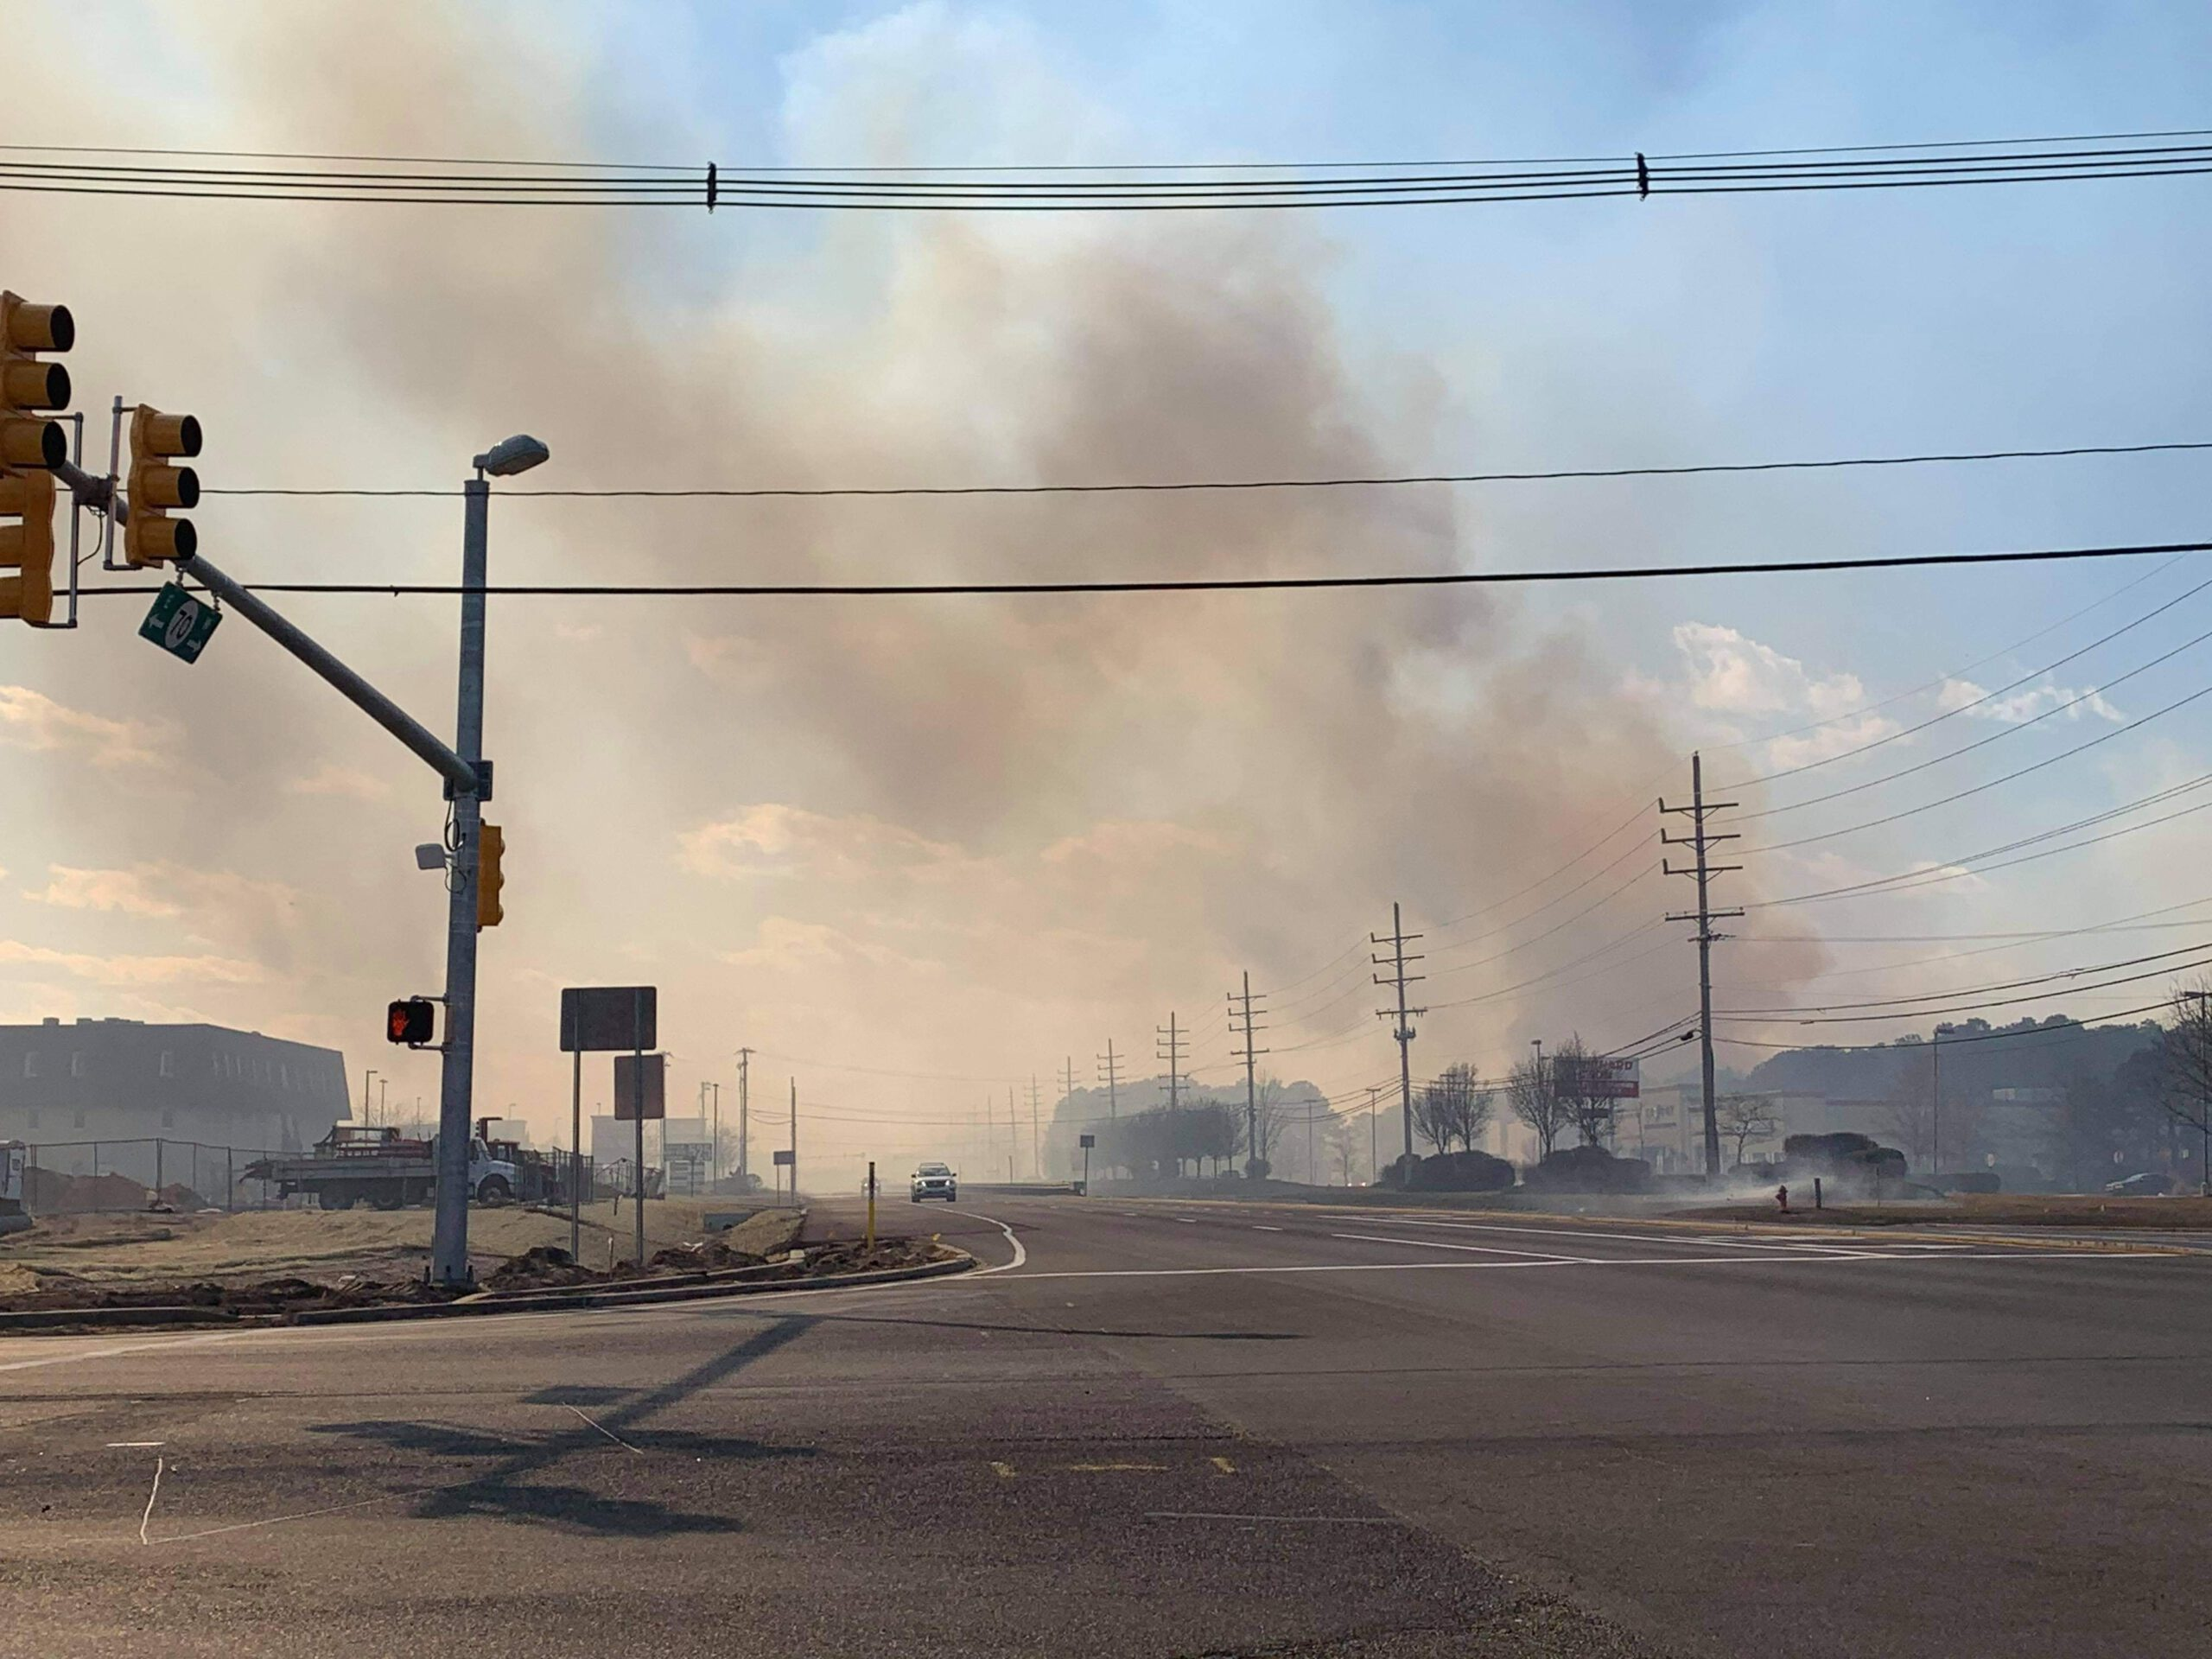 Over 170 Acres, 2 Commercial Structures & 1 Critically Injured Fire Fighter Later- Progress is Underway